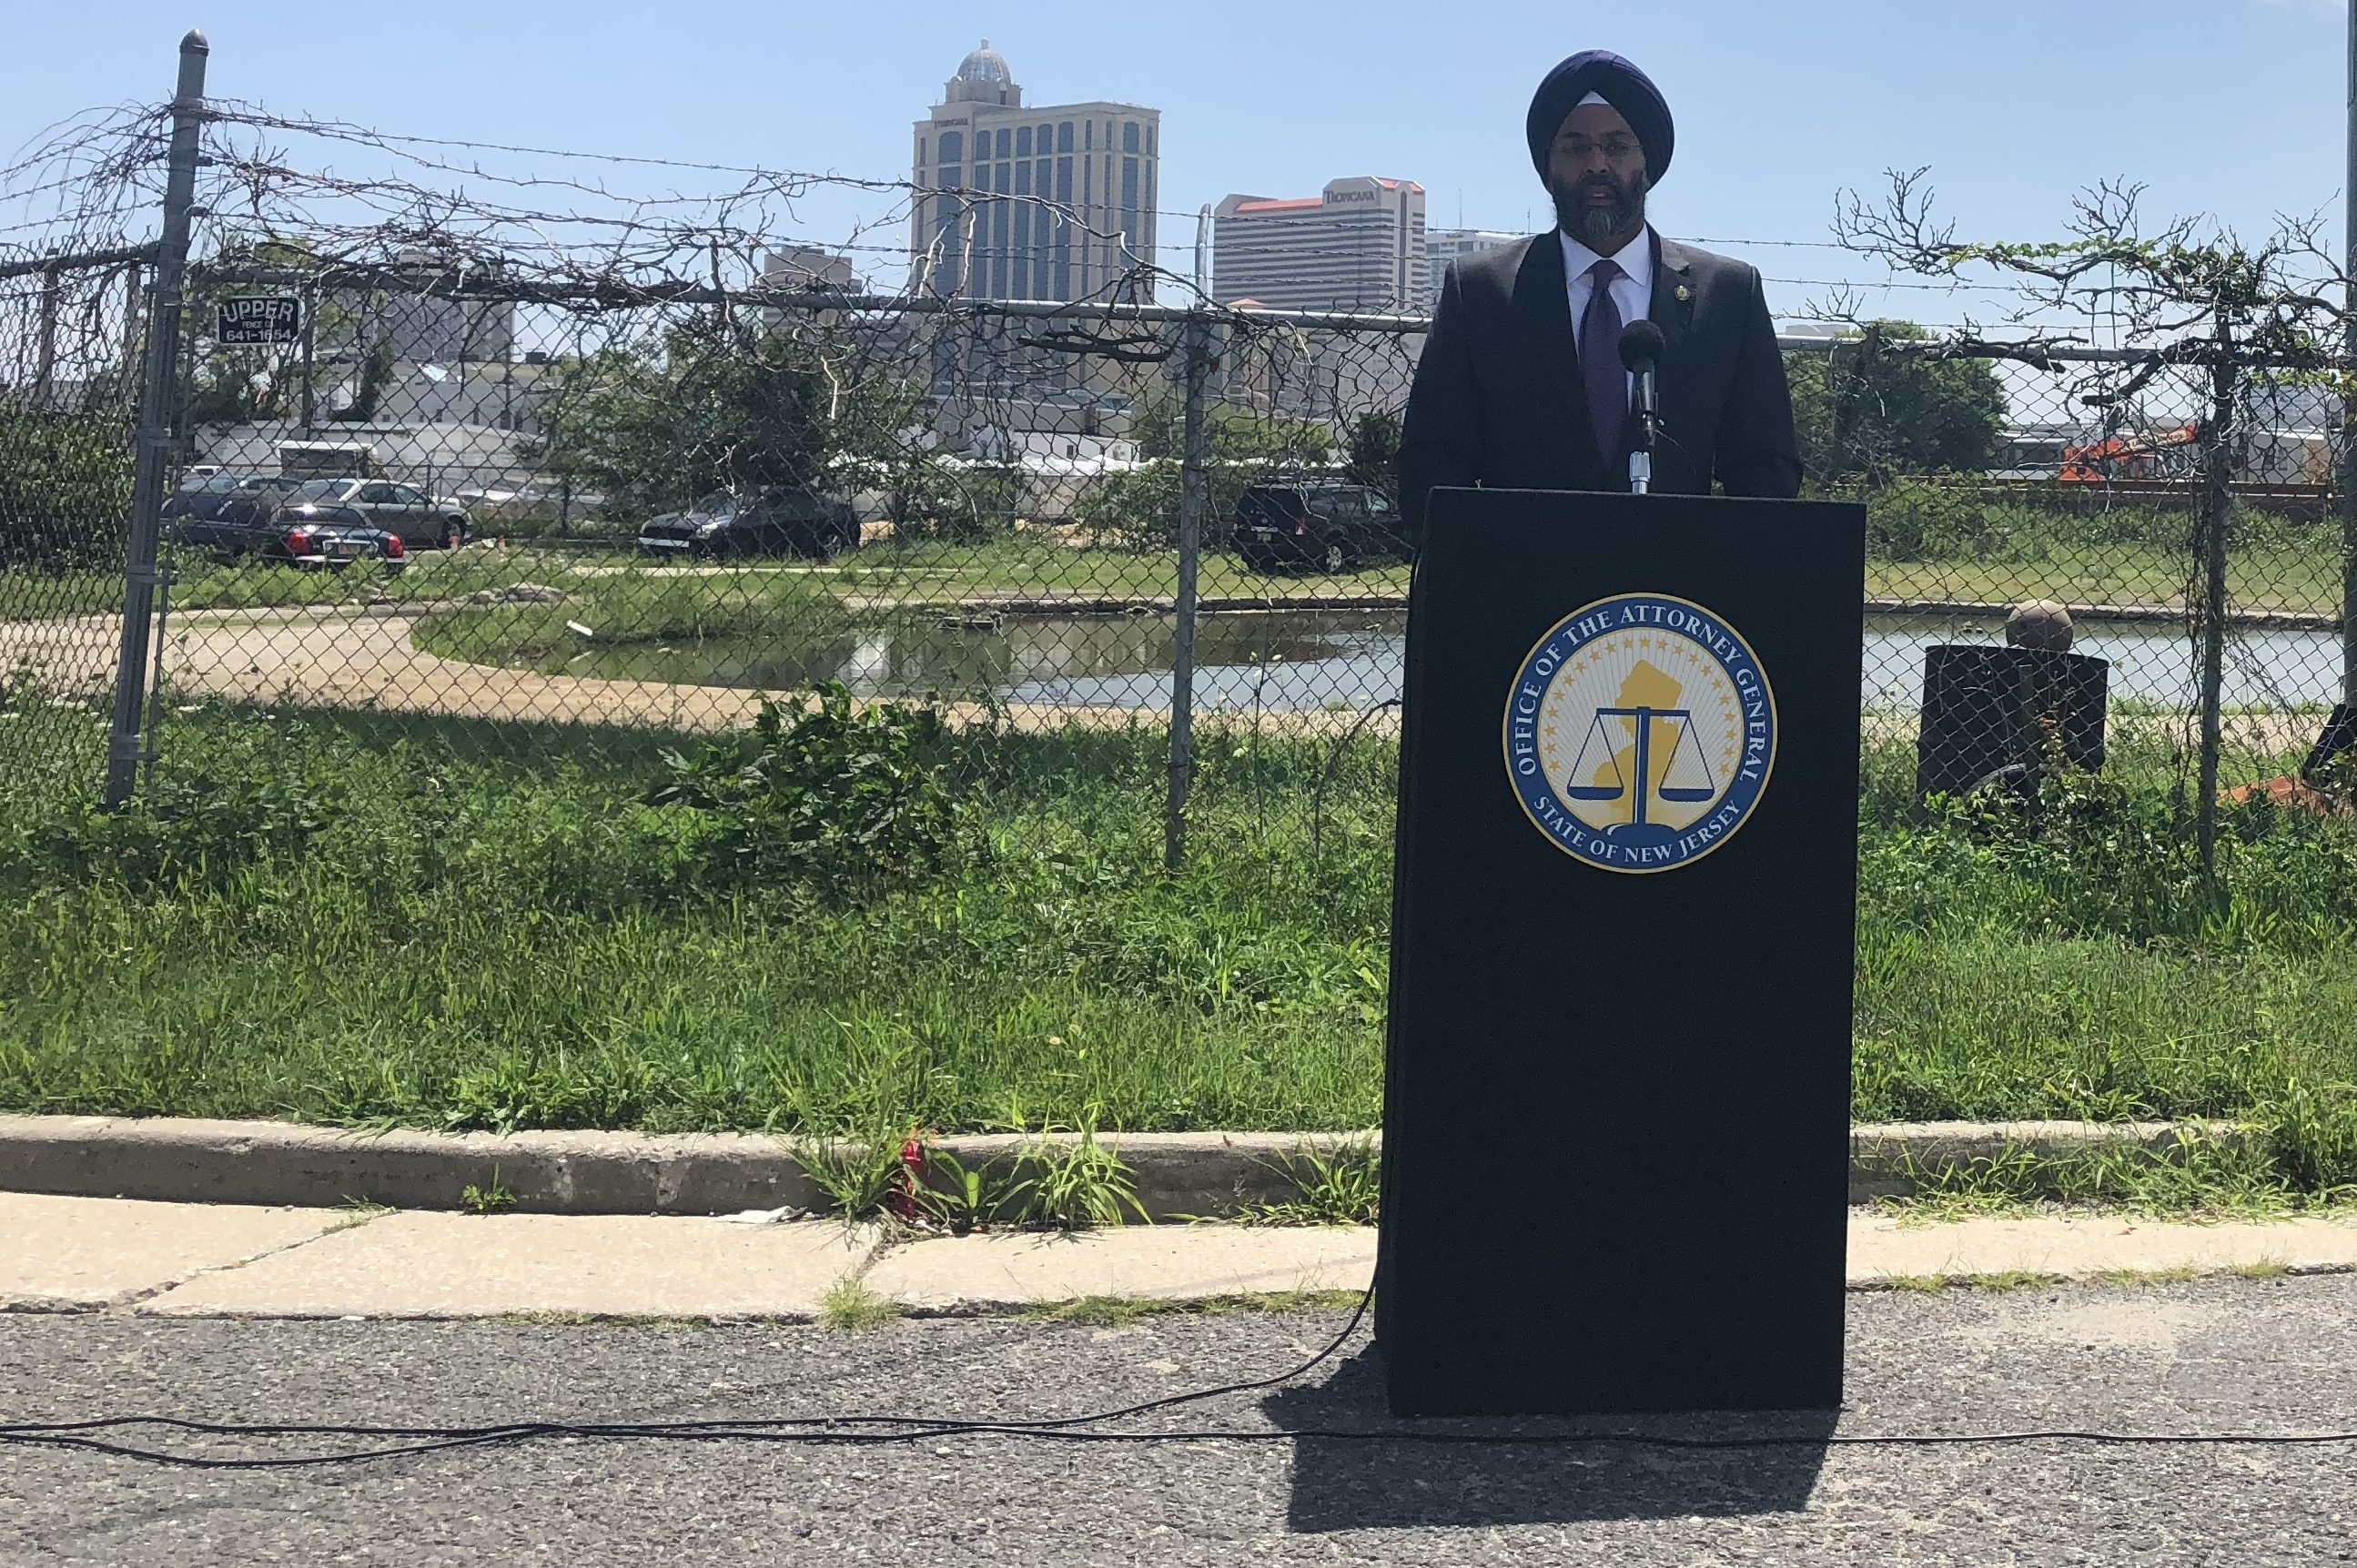 New Jersey Attorney General Gurbir Grewal in front of the Deull Fuel Company manufactured gas plant site, near the Beach Thorofare. waterway in Atlantic City